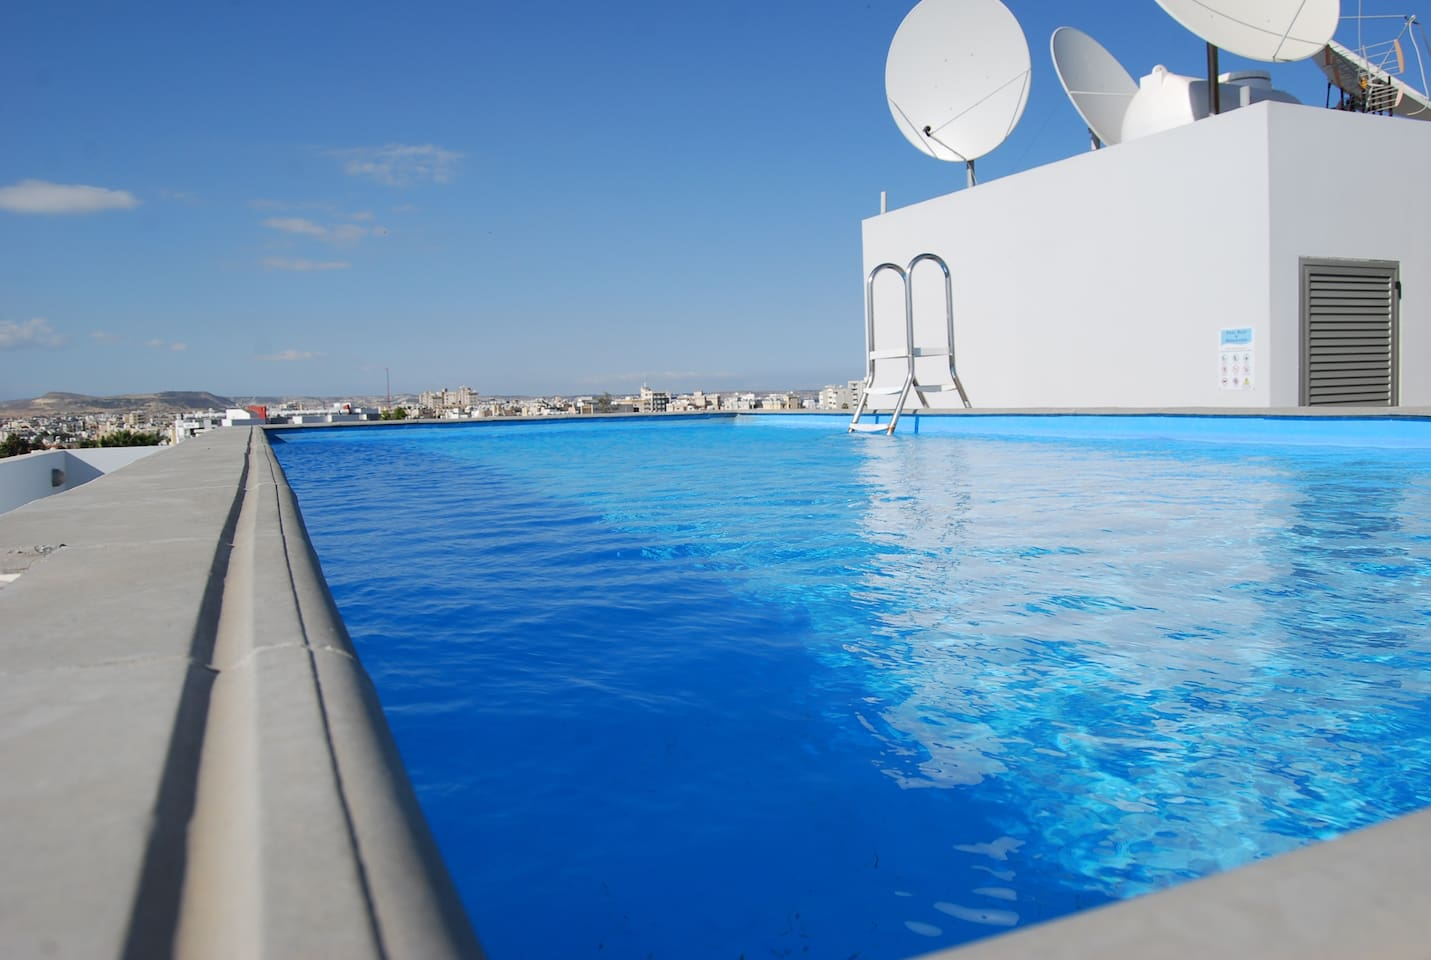 Pool on the roof. You should try it!!